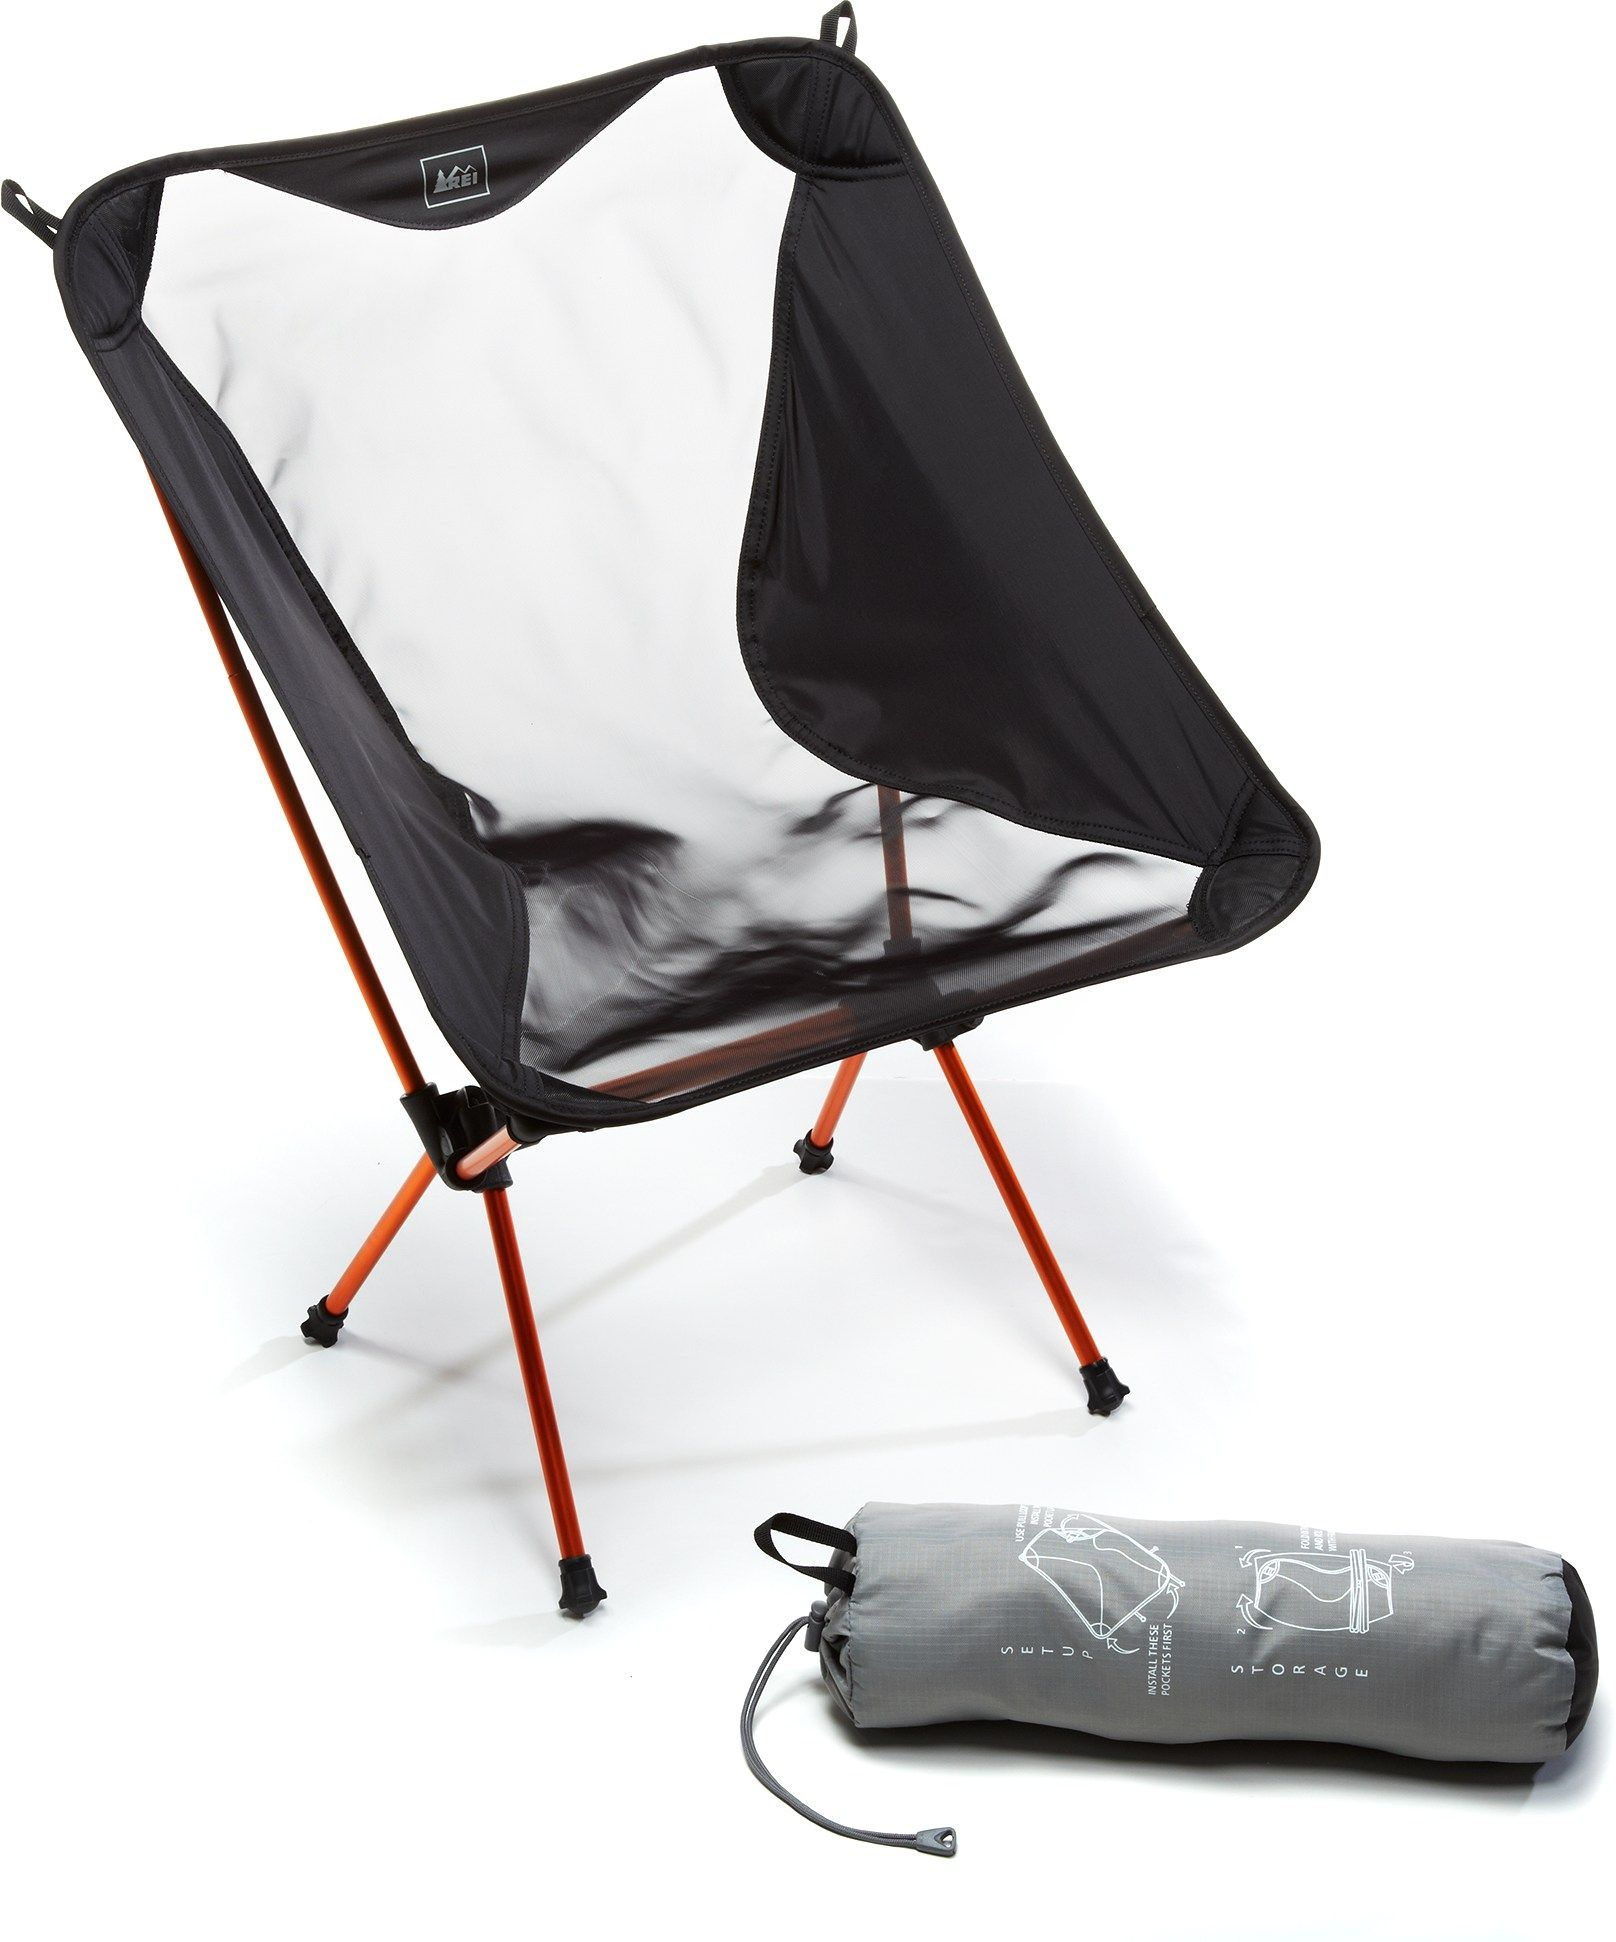 Carry comfort along on your next backpacking trip with the REI Trail Flex Lite chair.  sc 1 st  Pinterest & Carry comfort along on your next backpacking trip with the REI Trail ...